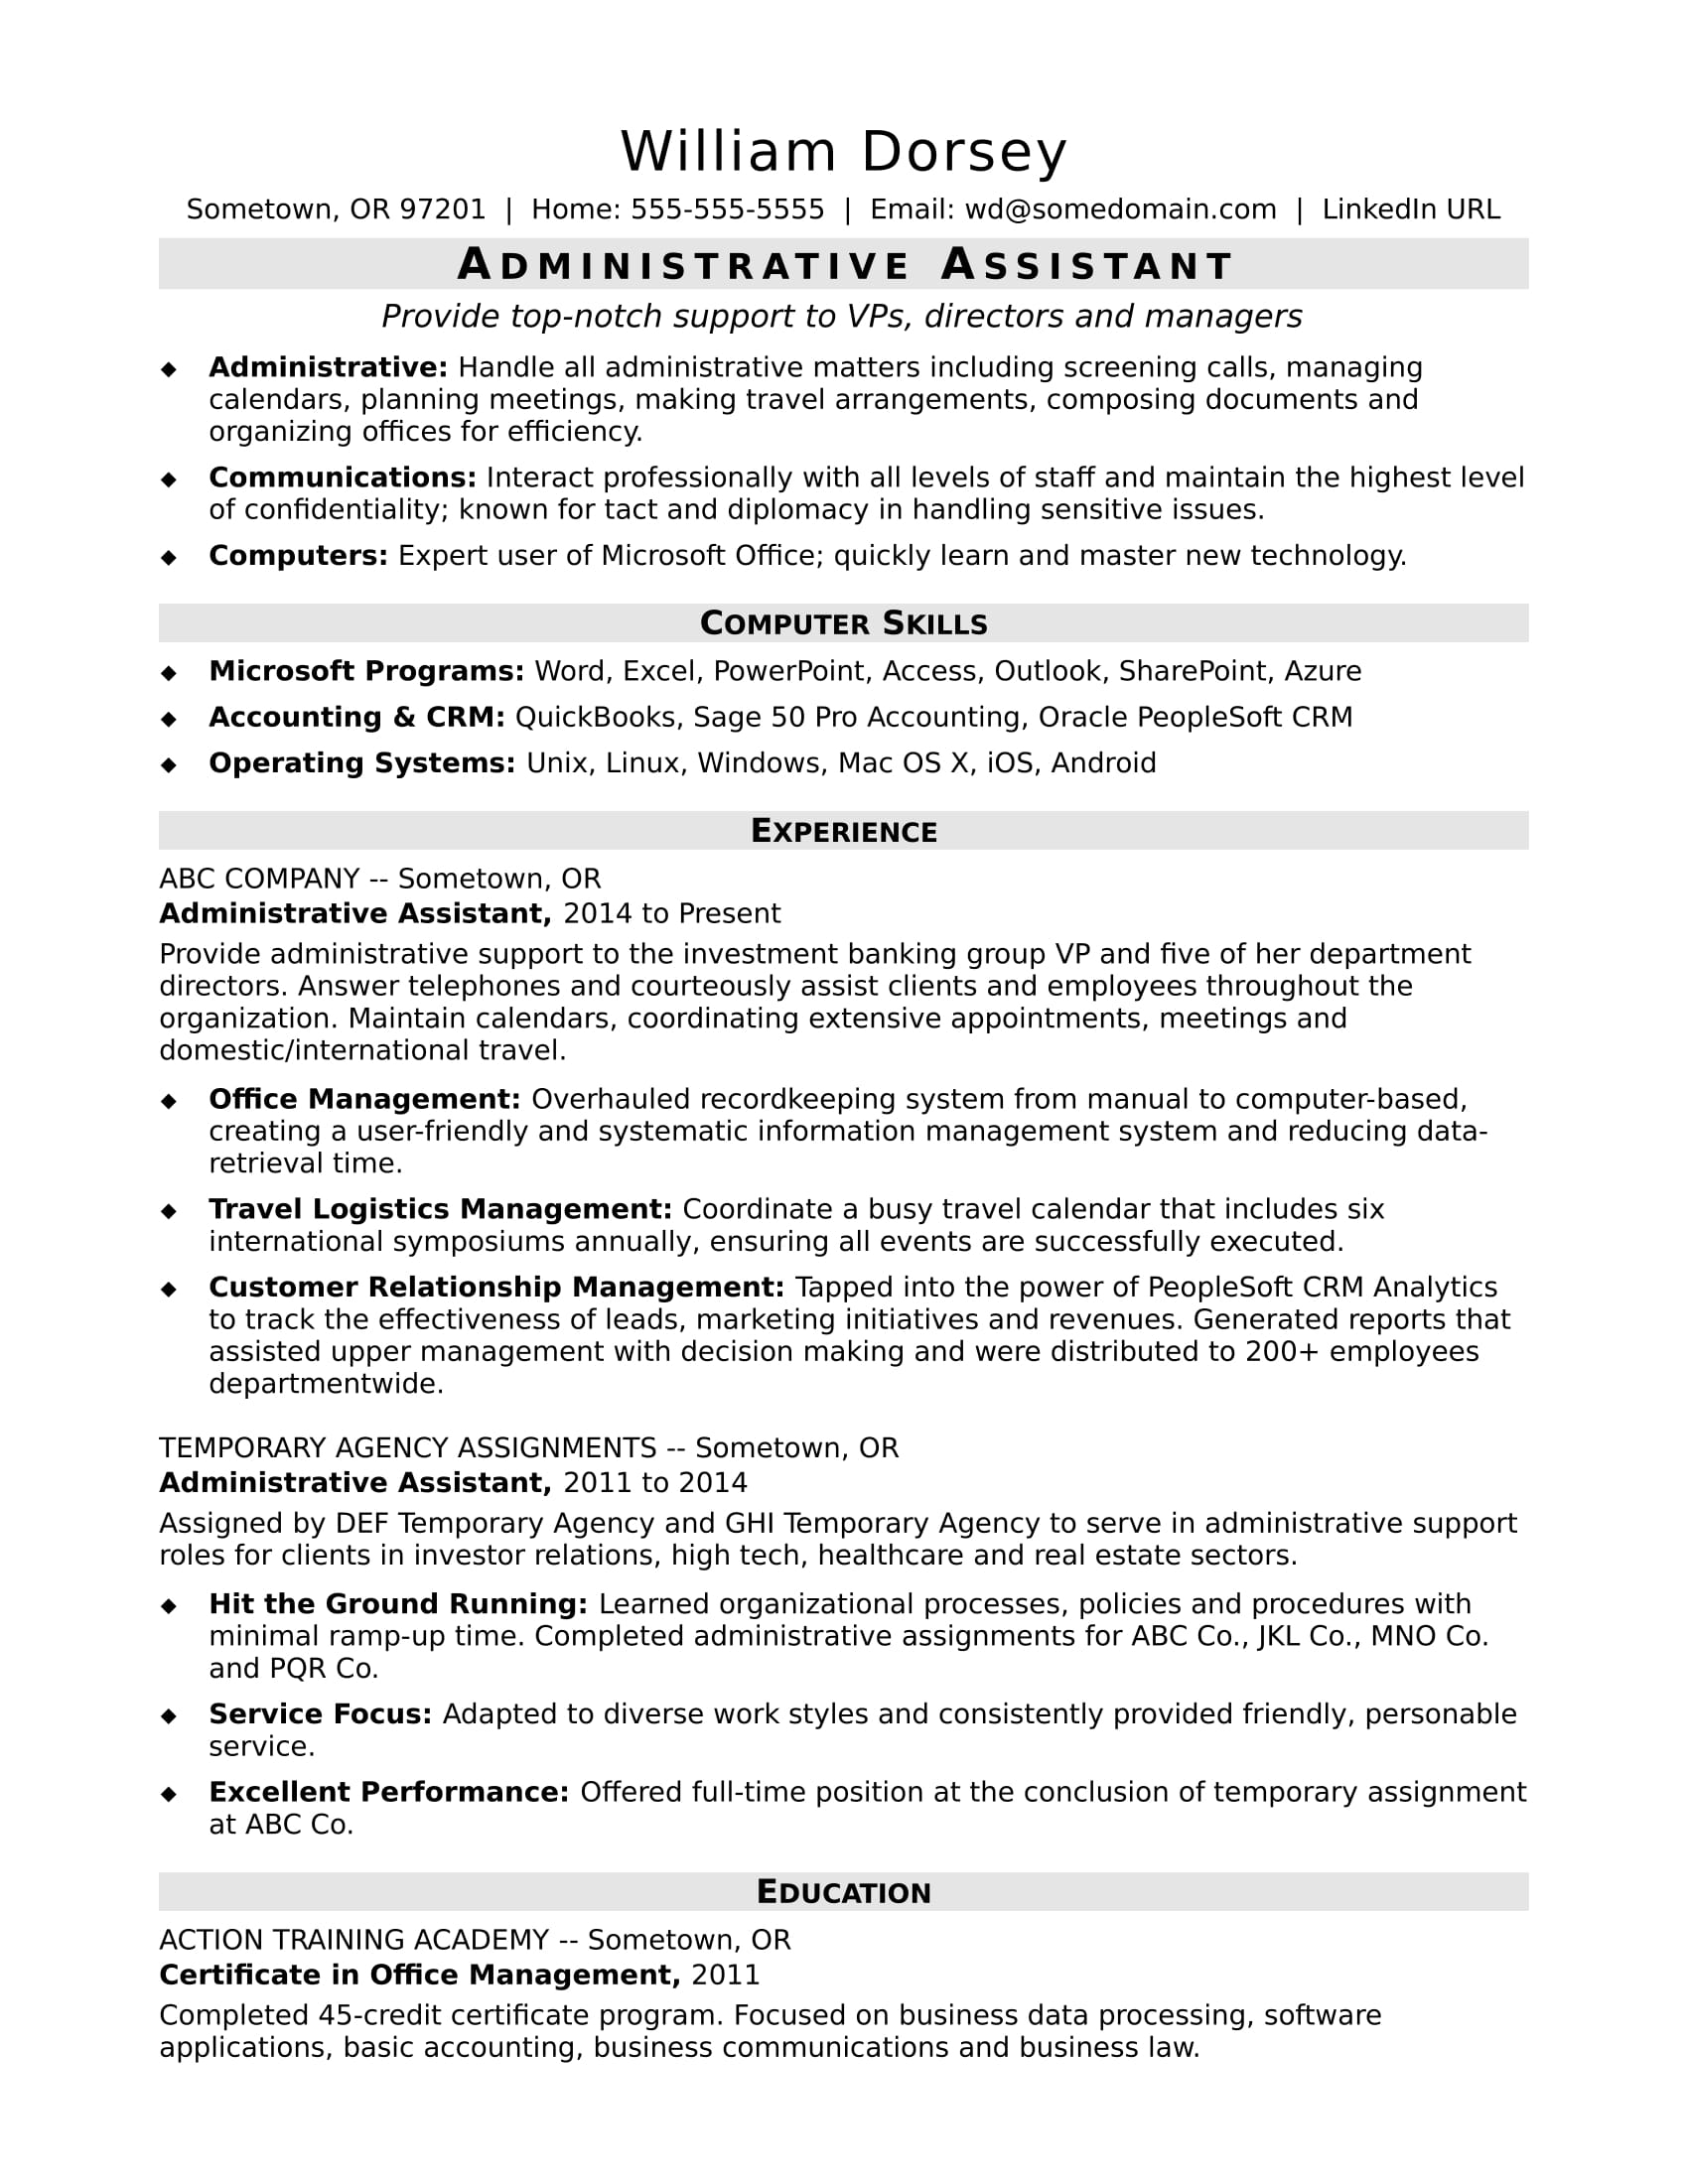 midlevel administrative assistant resume sample monster format for officer lds builder Resume Resume Format For Administrative Officer